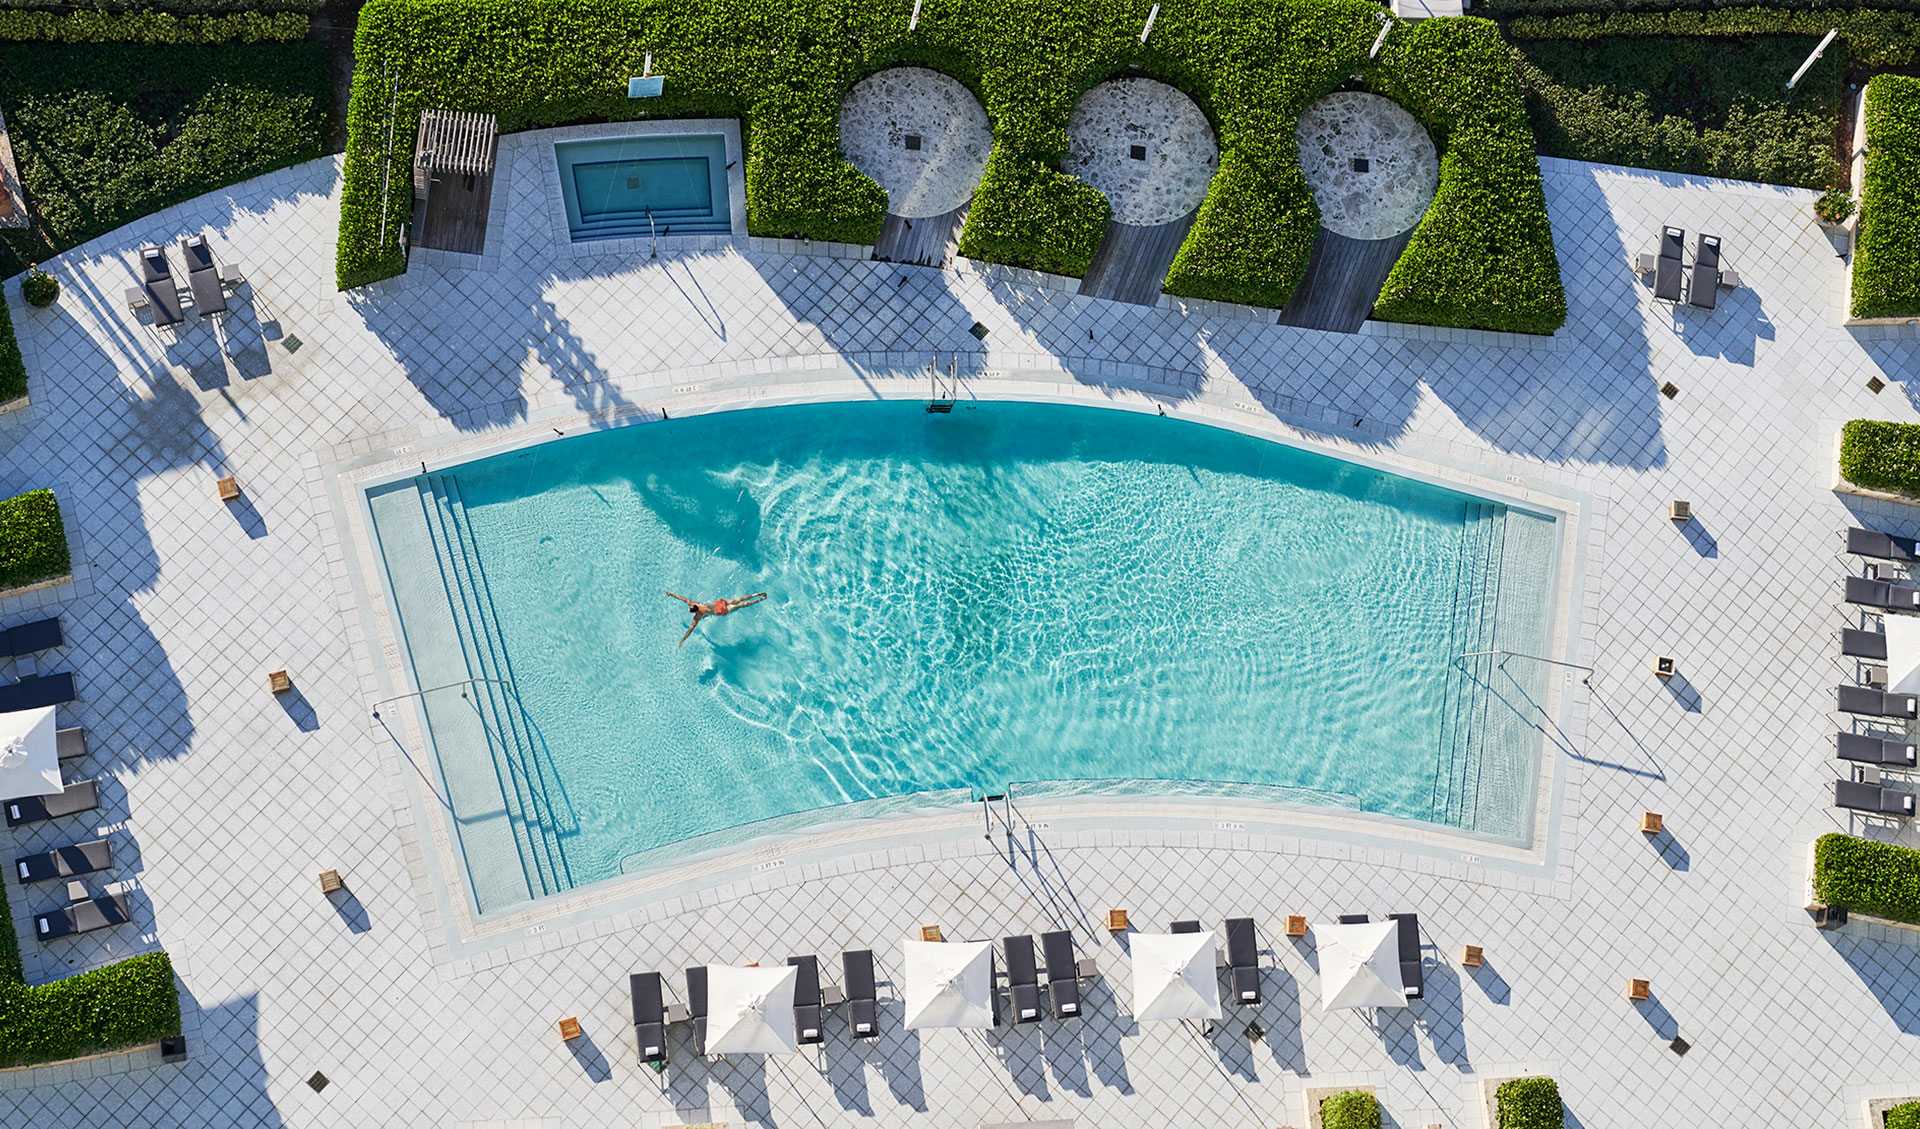 aerial image of a pool surrounded by white tile and lush green manicured bushes. Off to the side is a hot tub. There are gray lounge chairs adn white umbrellas lining the edge of the pool.